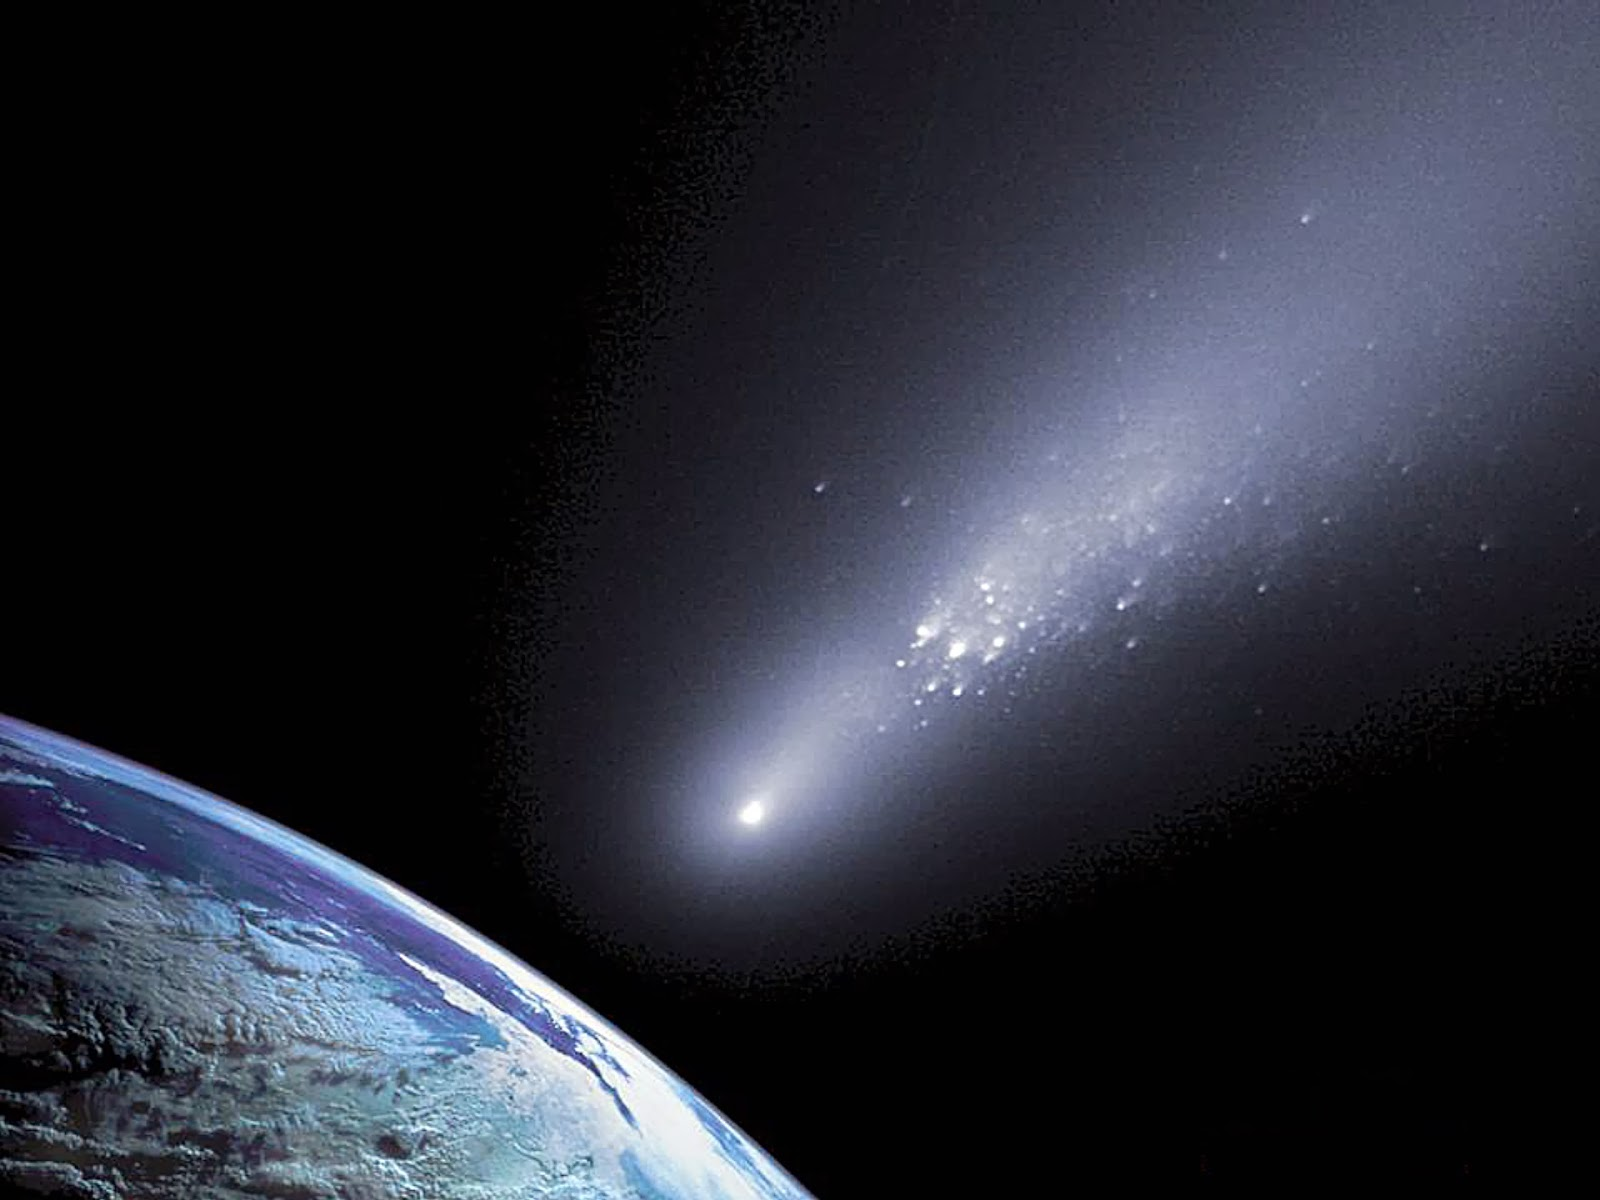 The Latest Worldwide Meteor/Meteorite News: March 2014